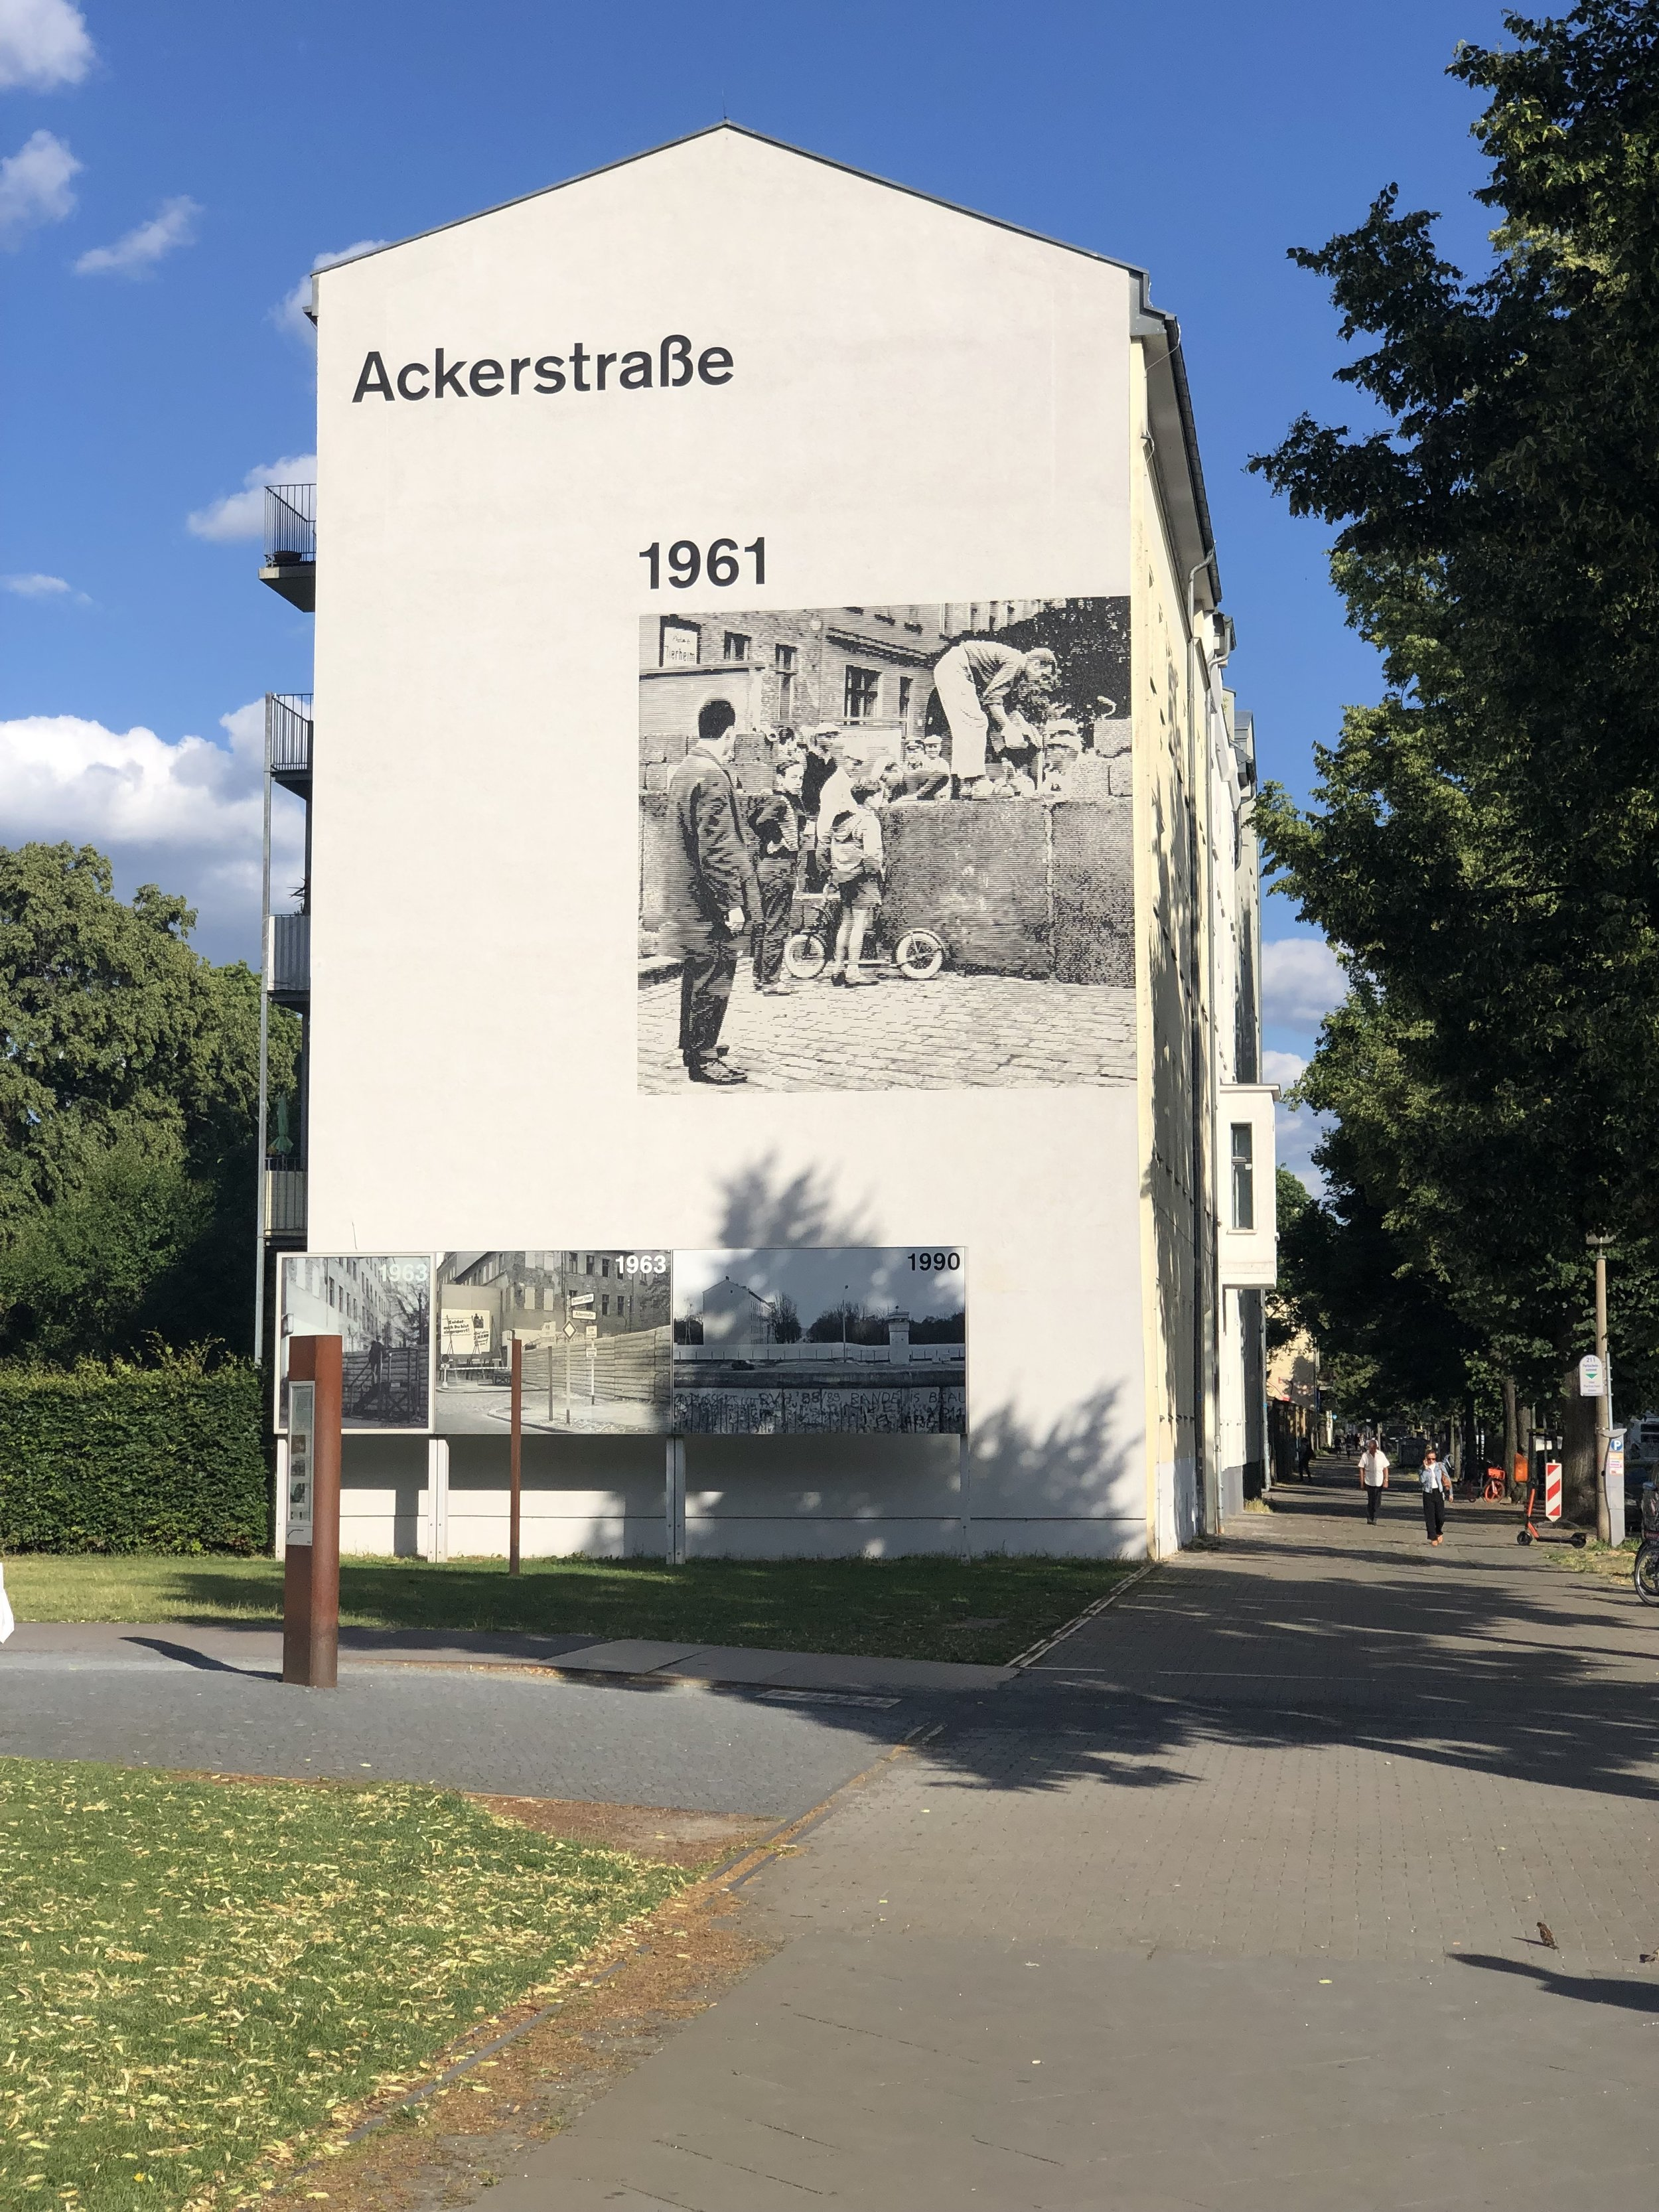 A mural on the side of a building showing the construction of the wall back in 1961.